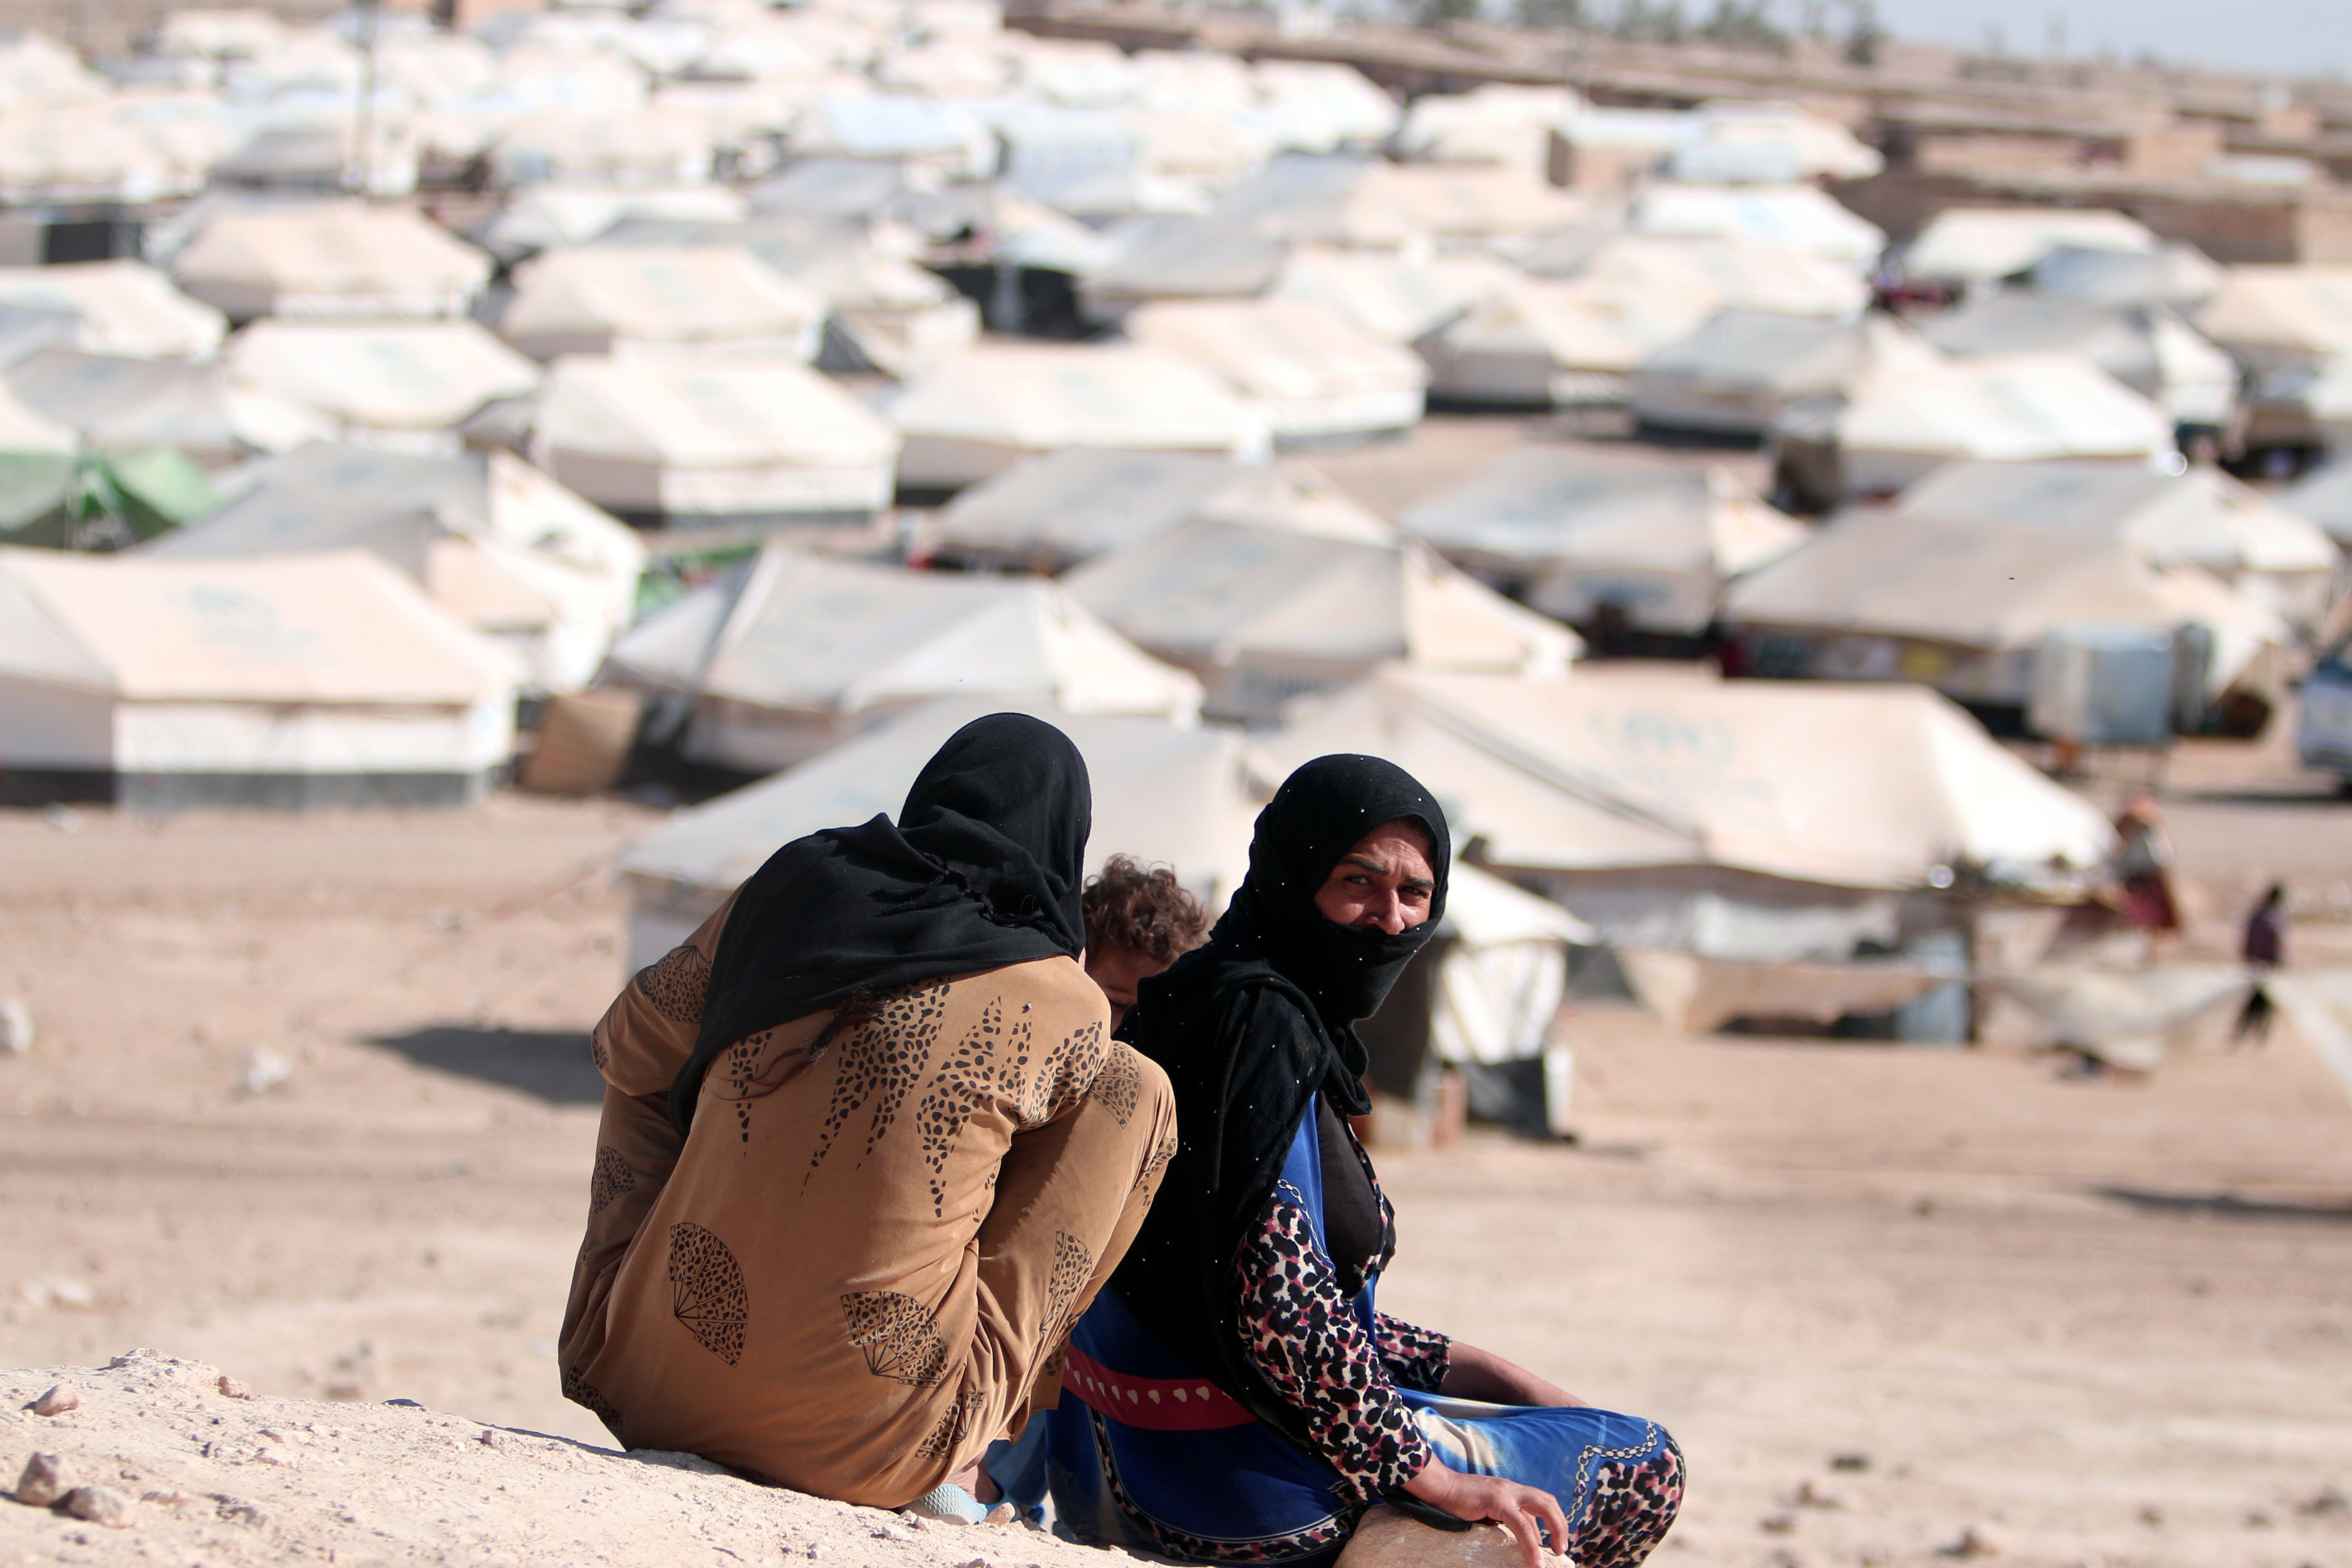 Iraqi refugee women sit overlooking al-Howl refugee camp south of Hasaka city, Syria October 20, 2016.